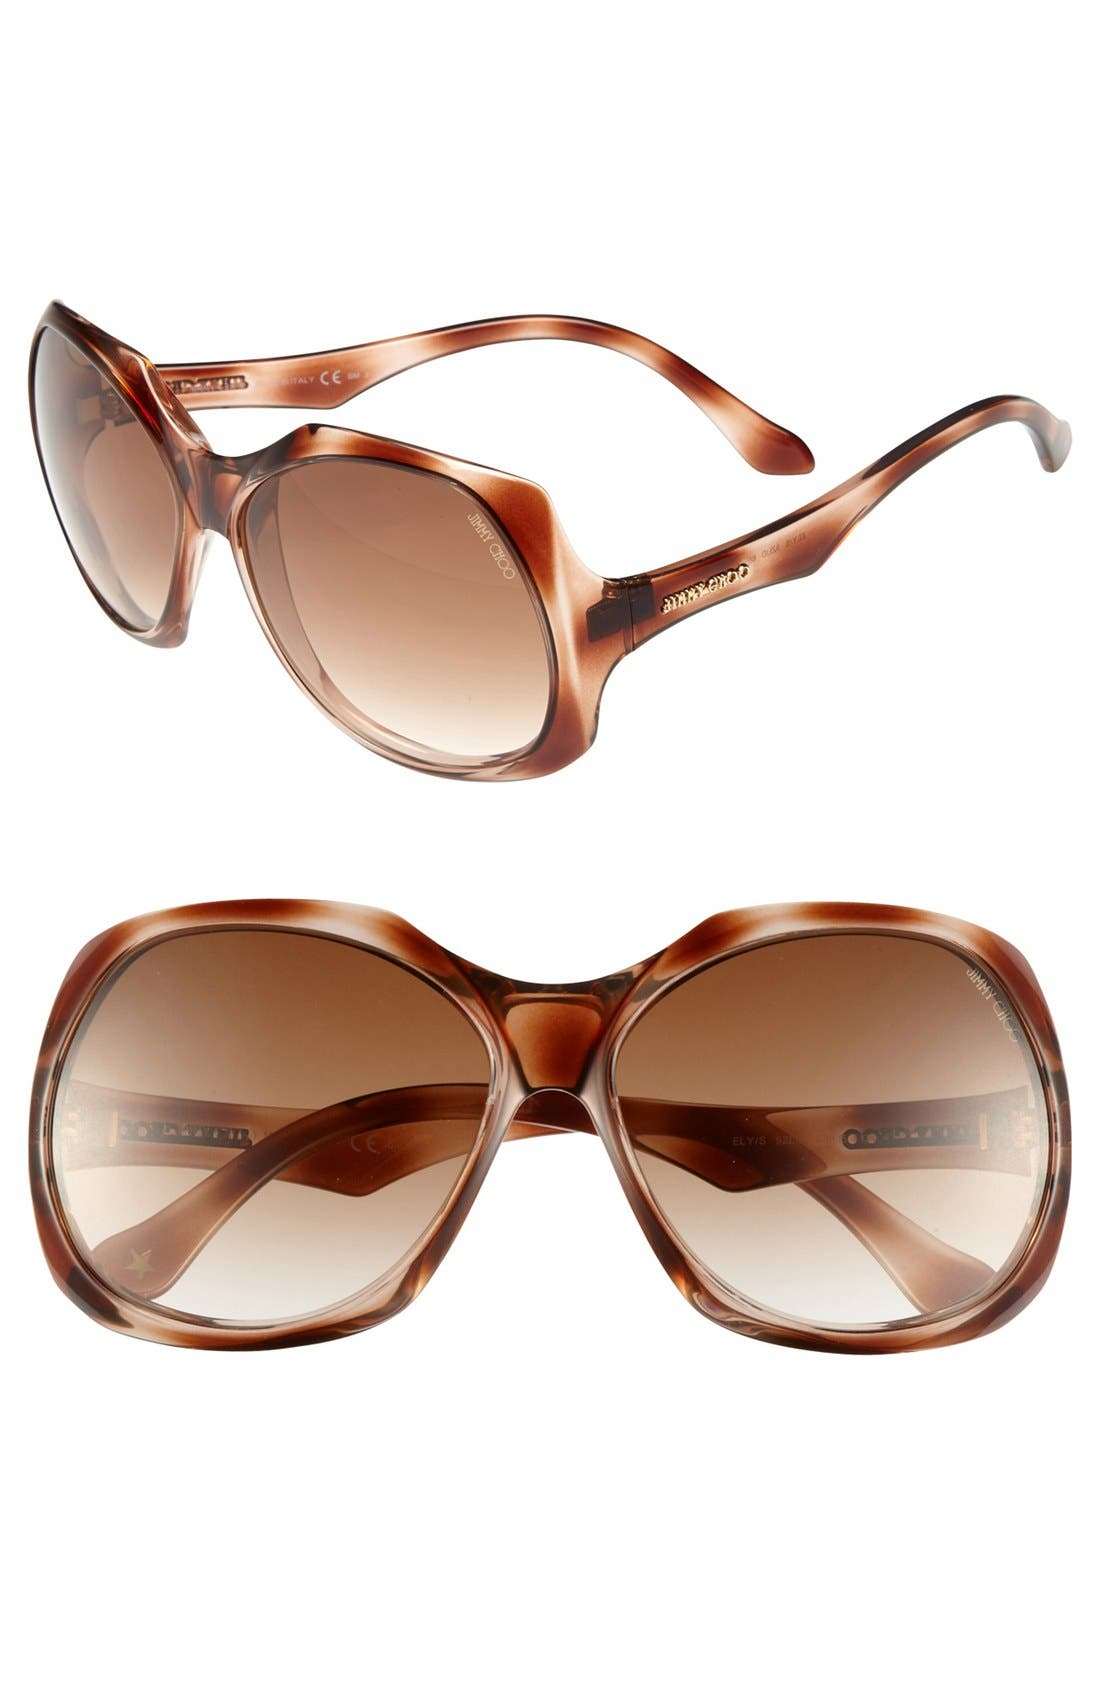 Main Image - Jimmy Choo 'Elys' 60mm Sunglasses